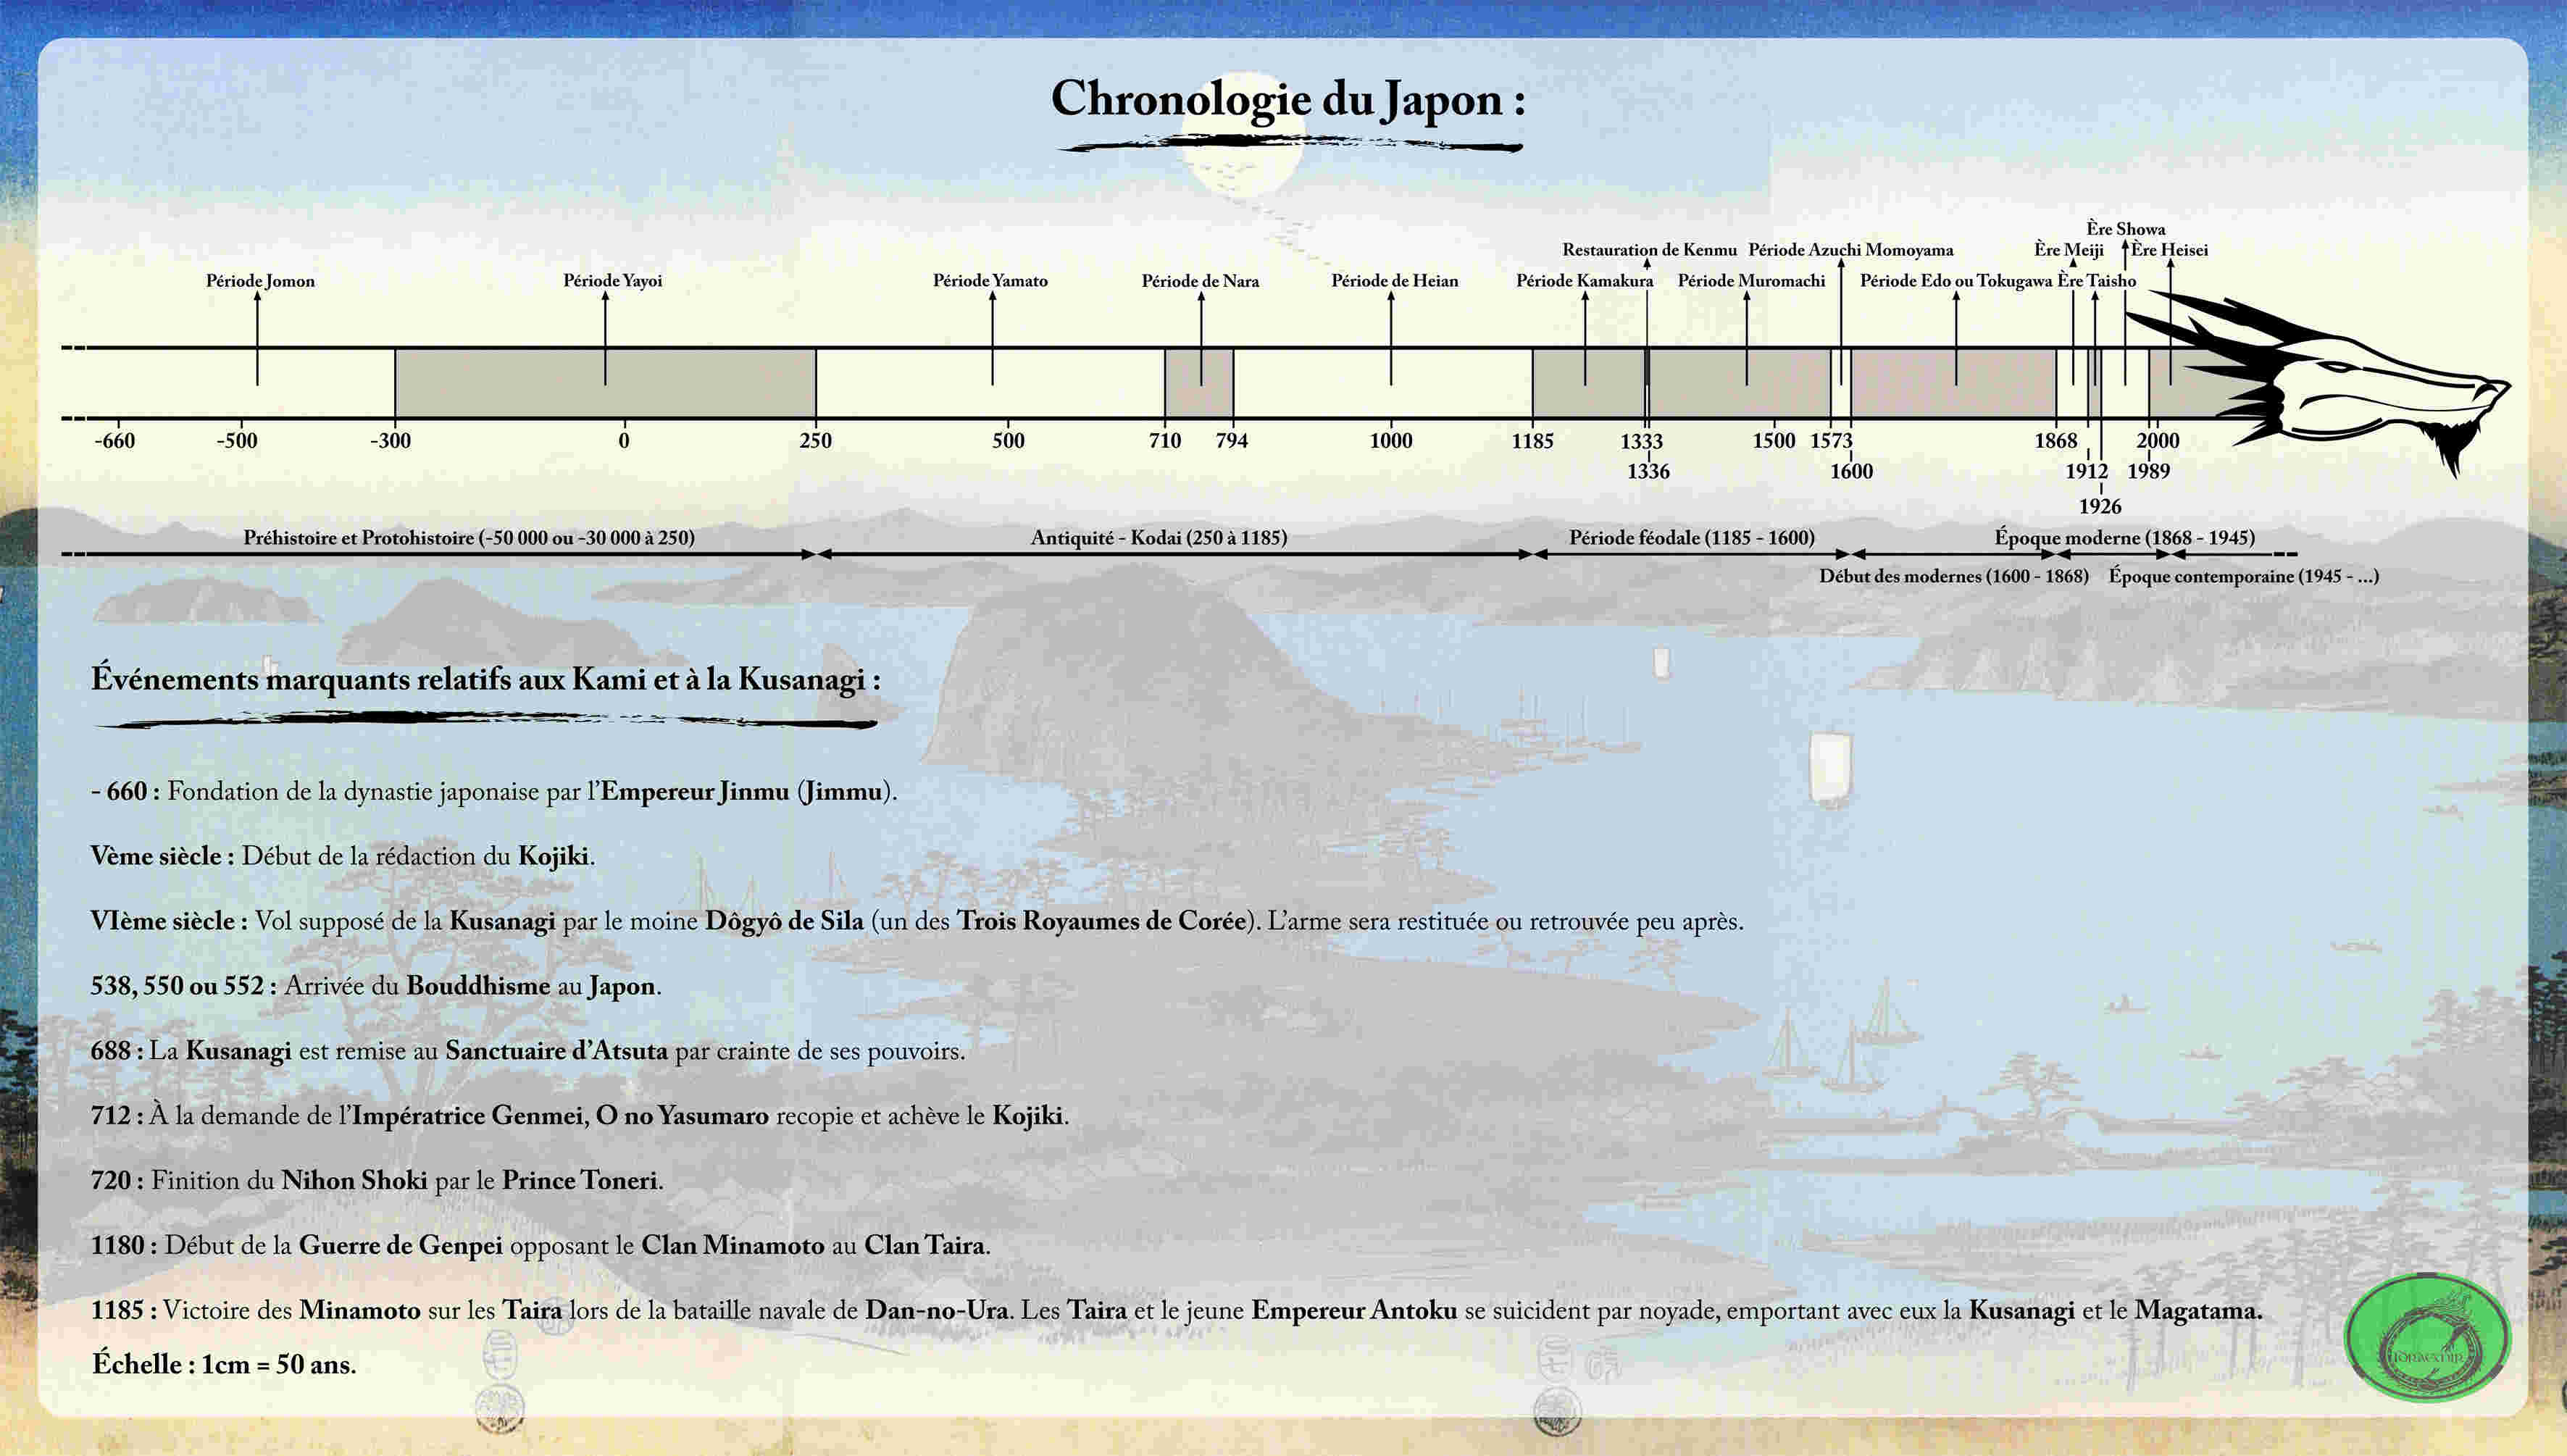 Chronology of Japan